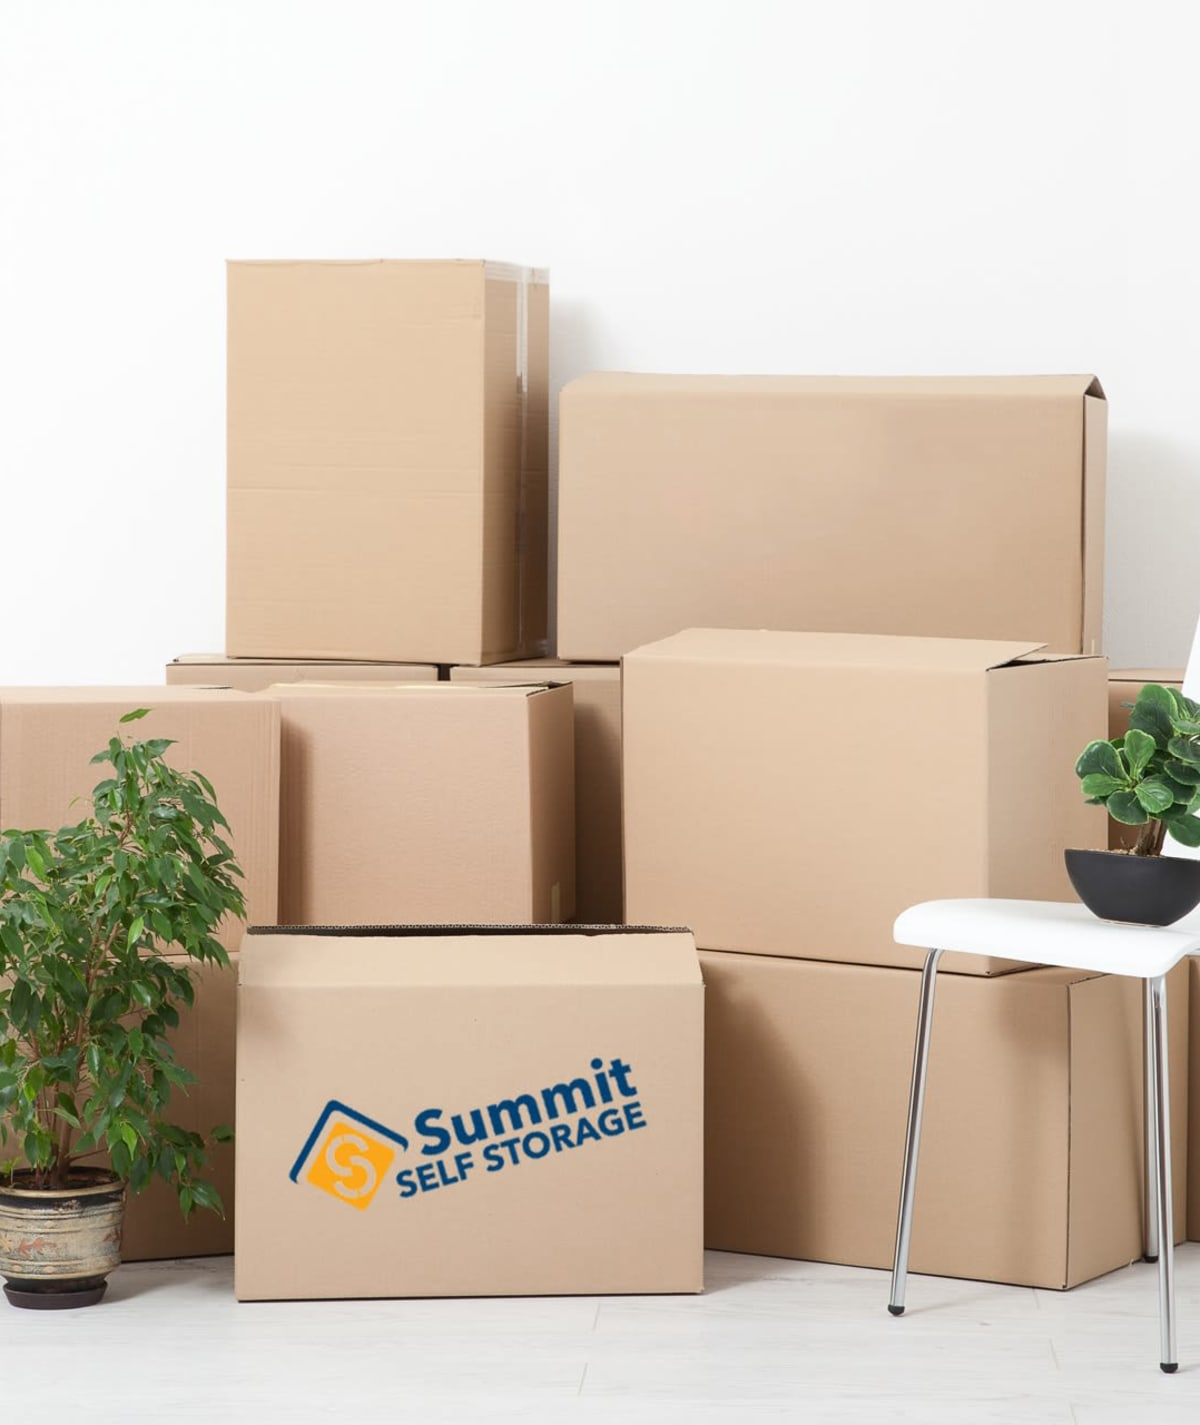 Business Storage at Summit Self Storage